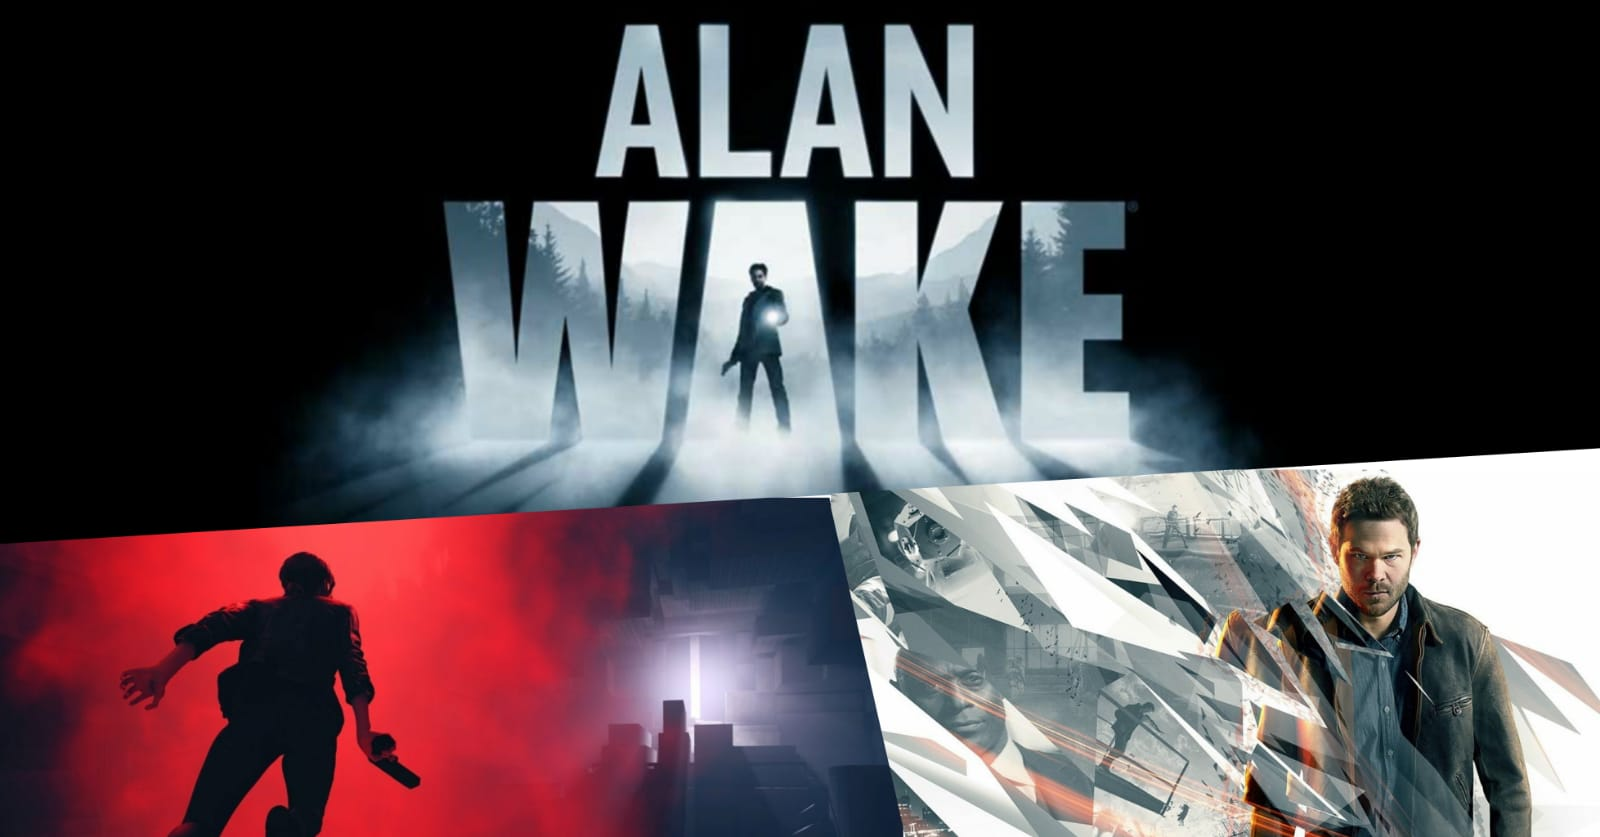 Da Alan Wake 2 a Control: cos'è successo in Remedy? 1